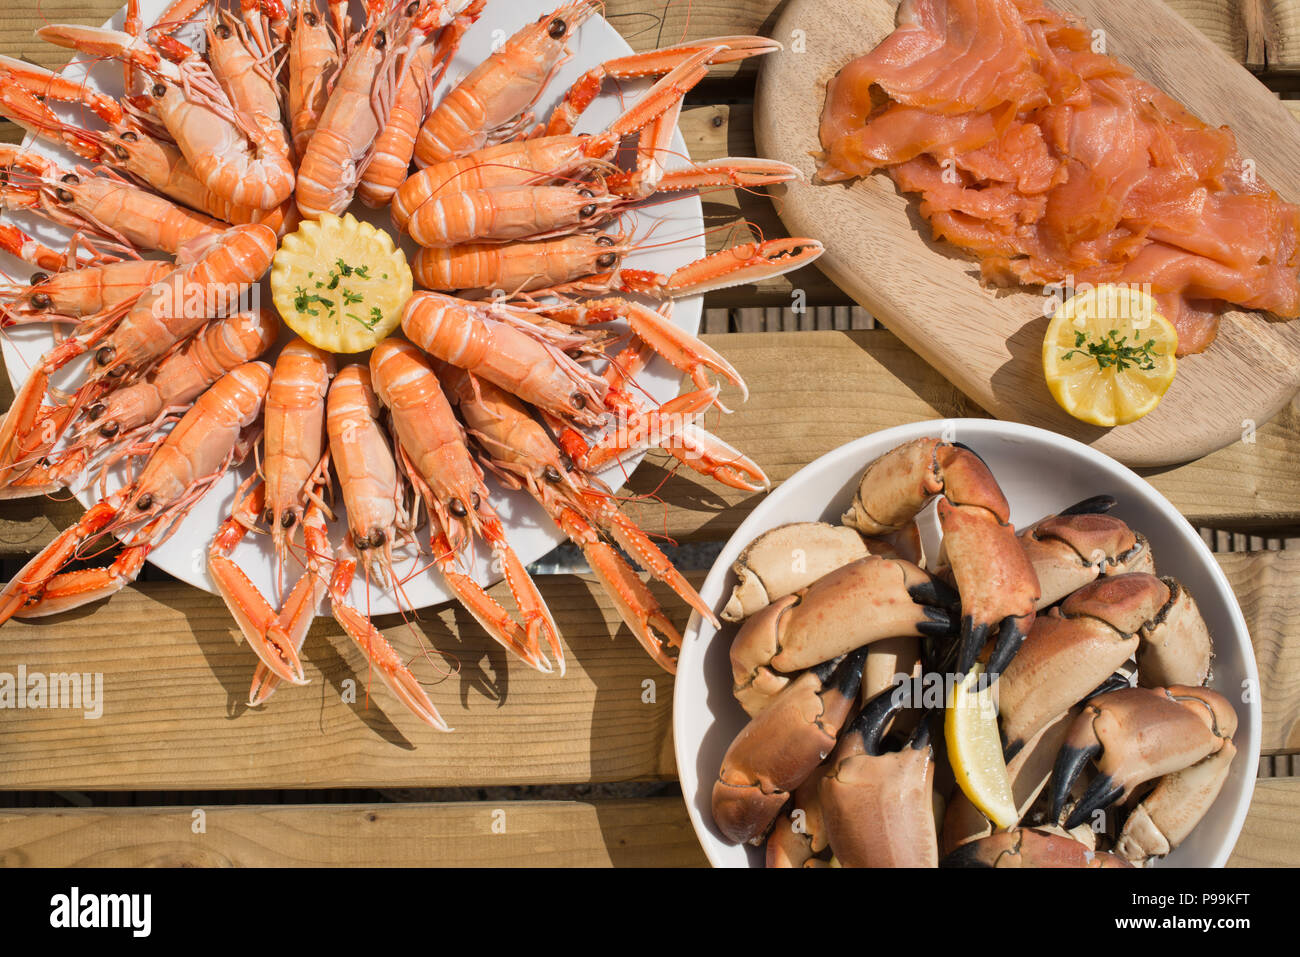 Wonderful spread of Scottish seafood - Stock Image